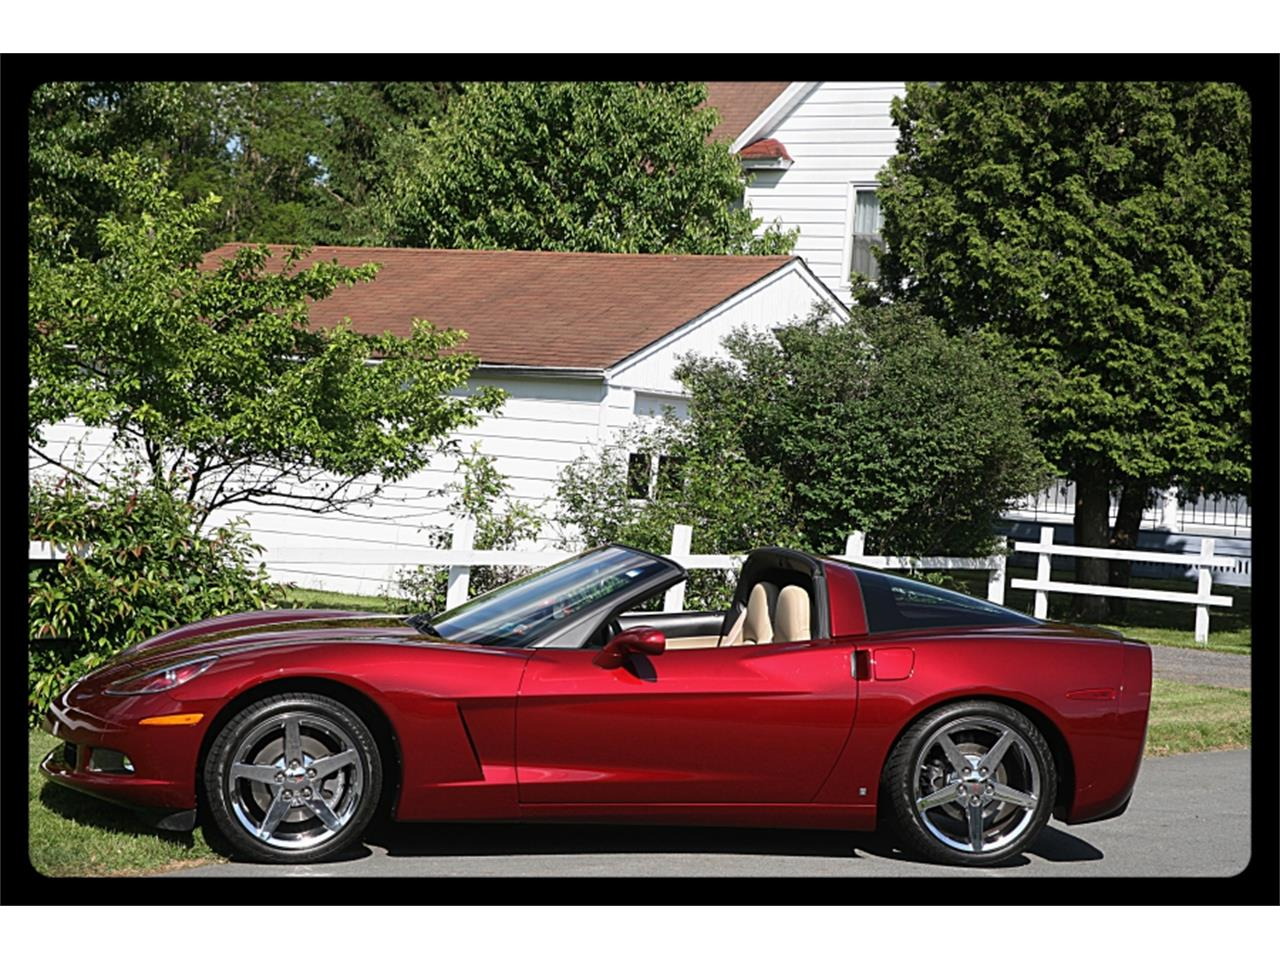 Large Picture of '07 Chevrolet Corvette located in OLD FORGE Pennsylvania - $36,900.00 Offered by Coffee's Sports and Classics - QD4G